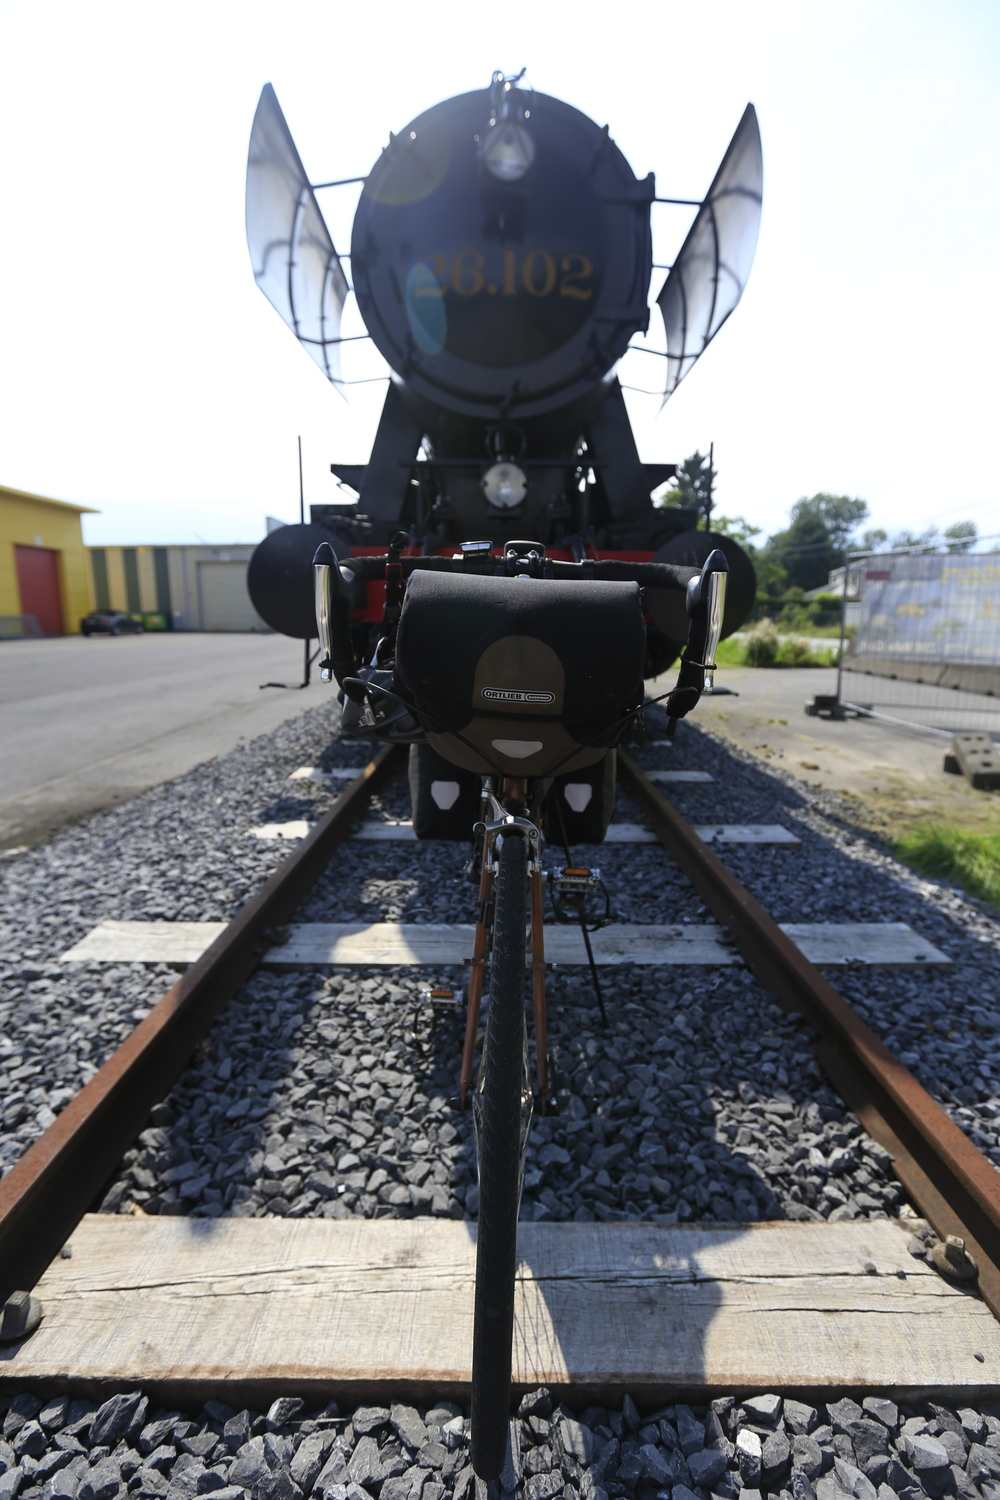 steam train train, locomotive, bicycle touring, bikepacking, canon 6d, bicycle, bikes, mountain bike, cycle gear, road bikes, road bike, raleigh bikes, bicycles, bike parts, mountain biking, bike accessories, racing bikes